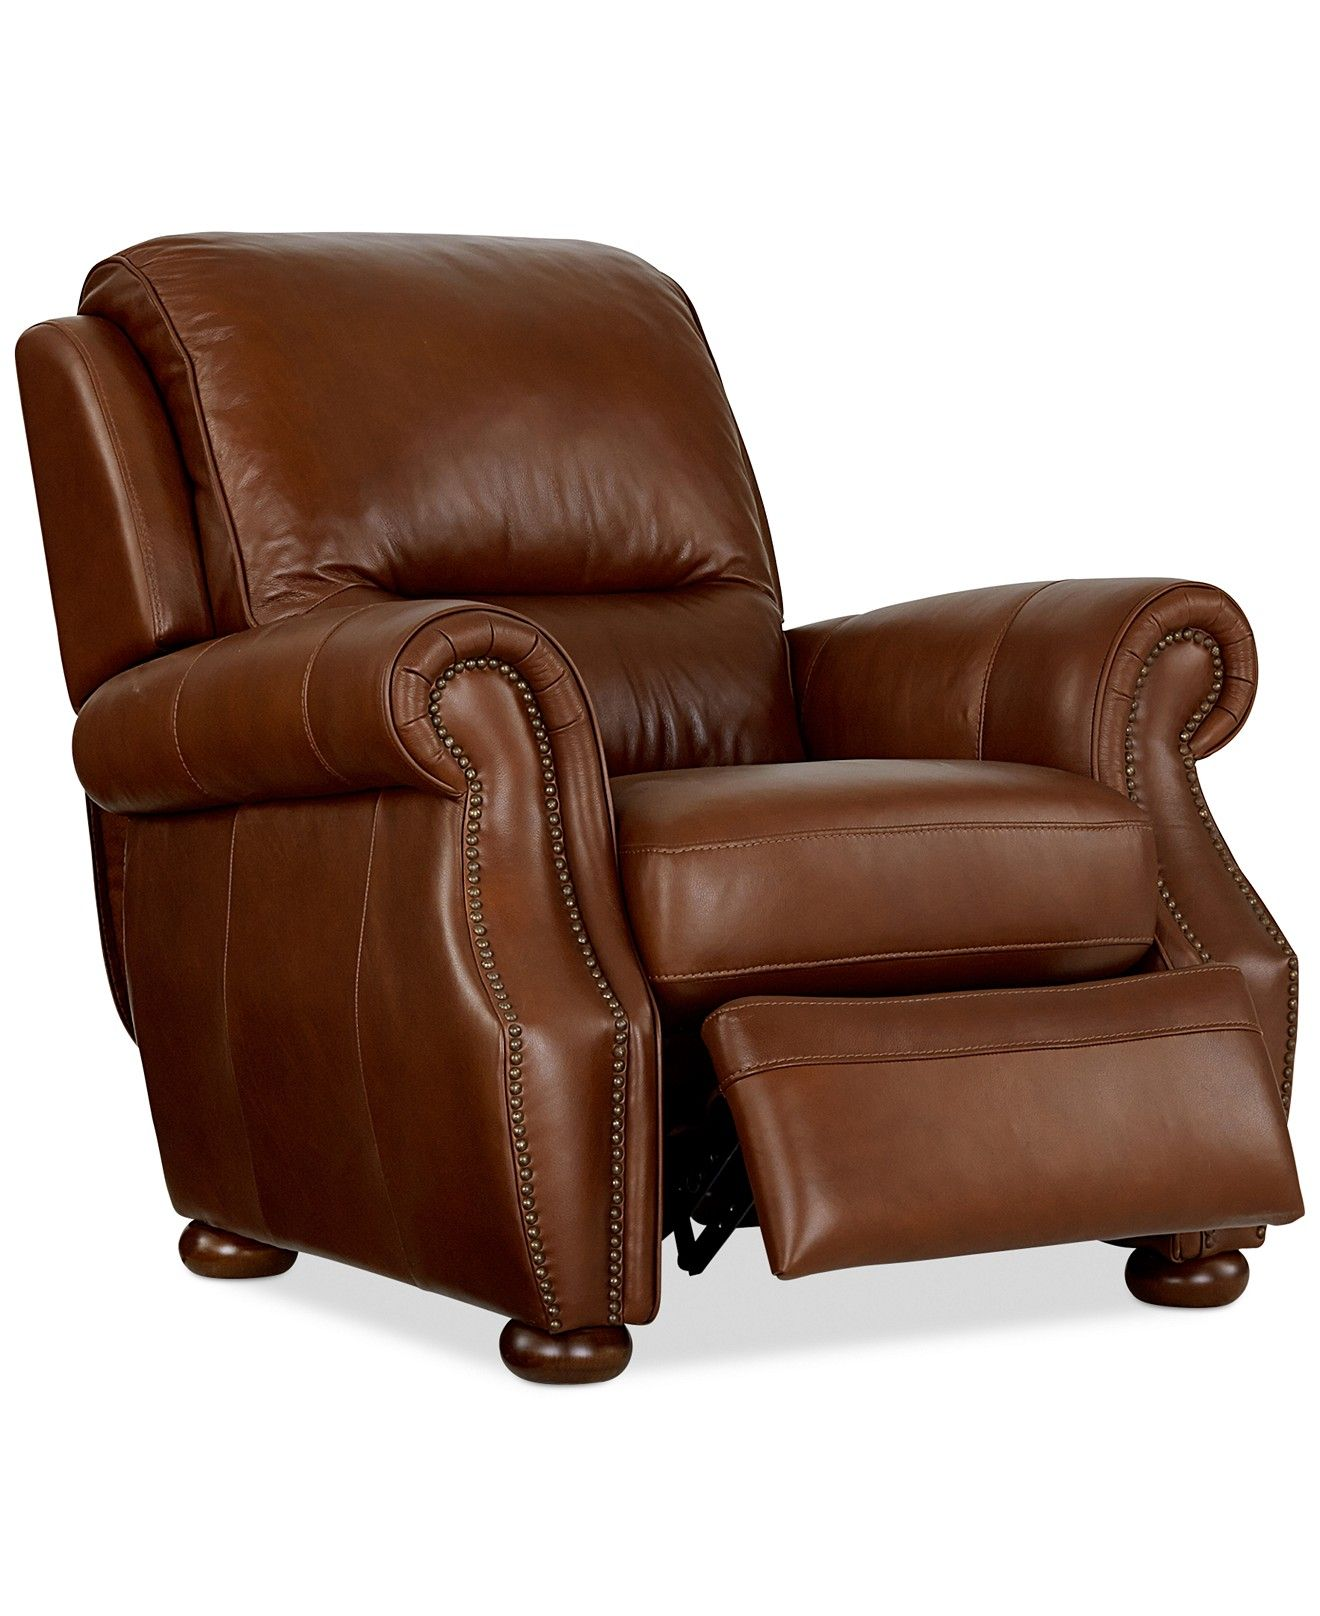 Royce leather recliner chair furniture macys